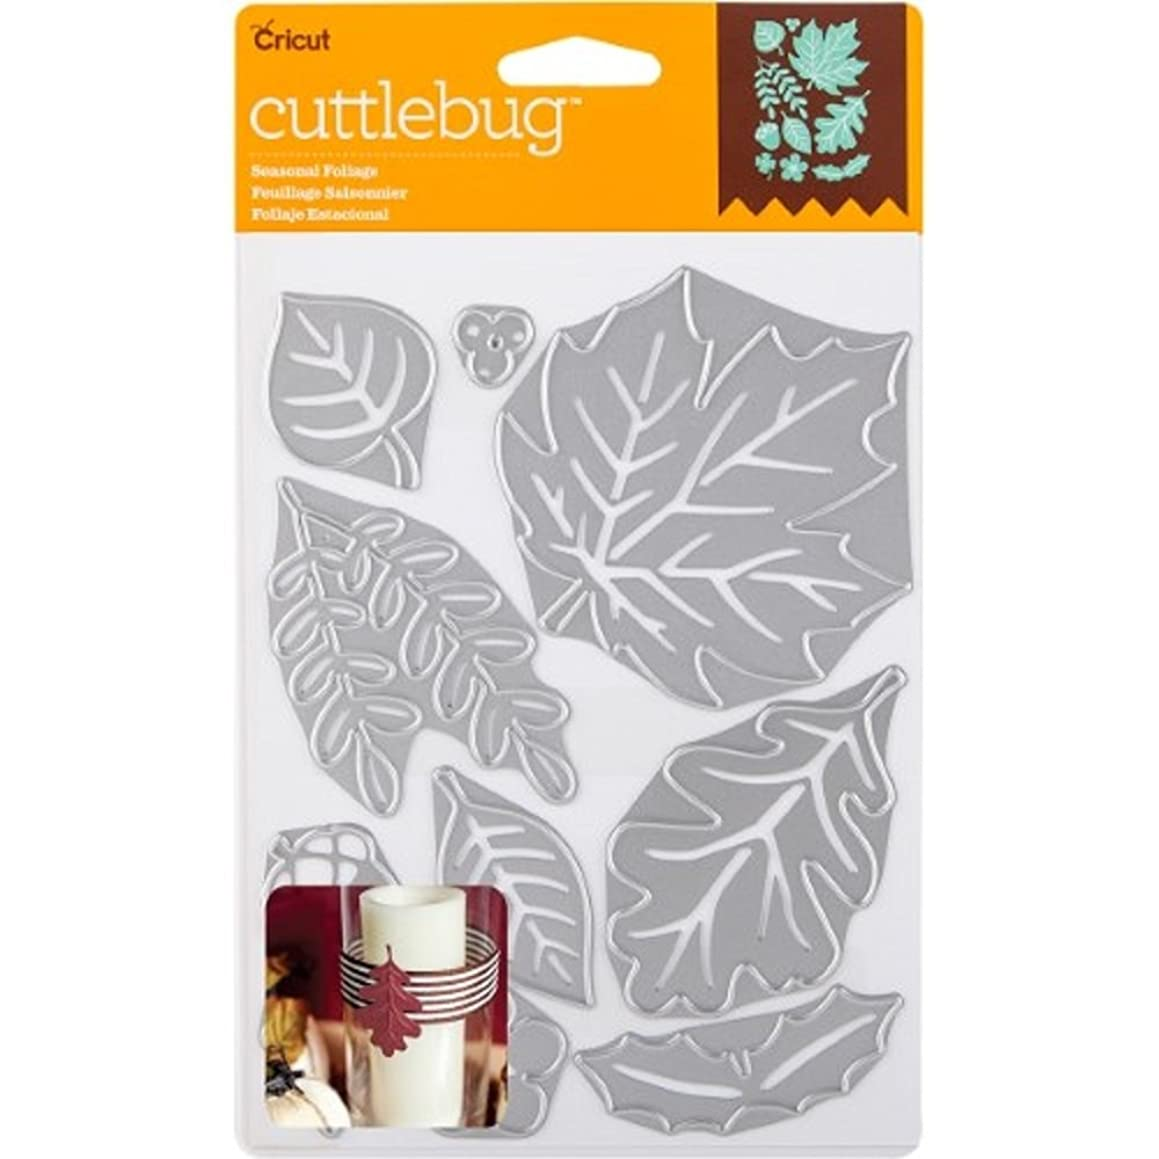 Cricut Cuttlebug Dies, Seasonal Foliage